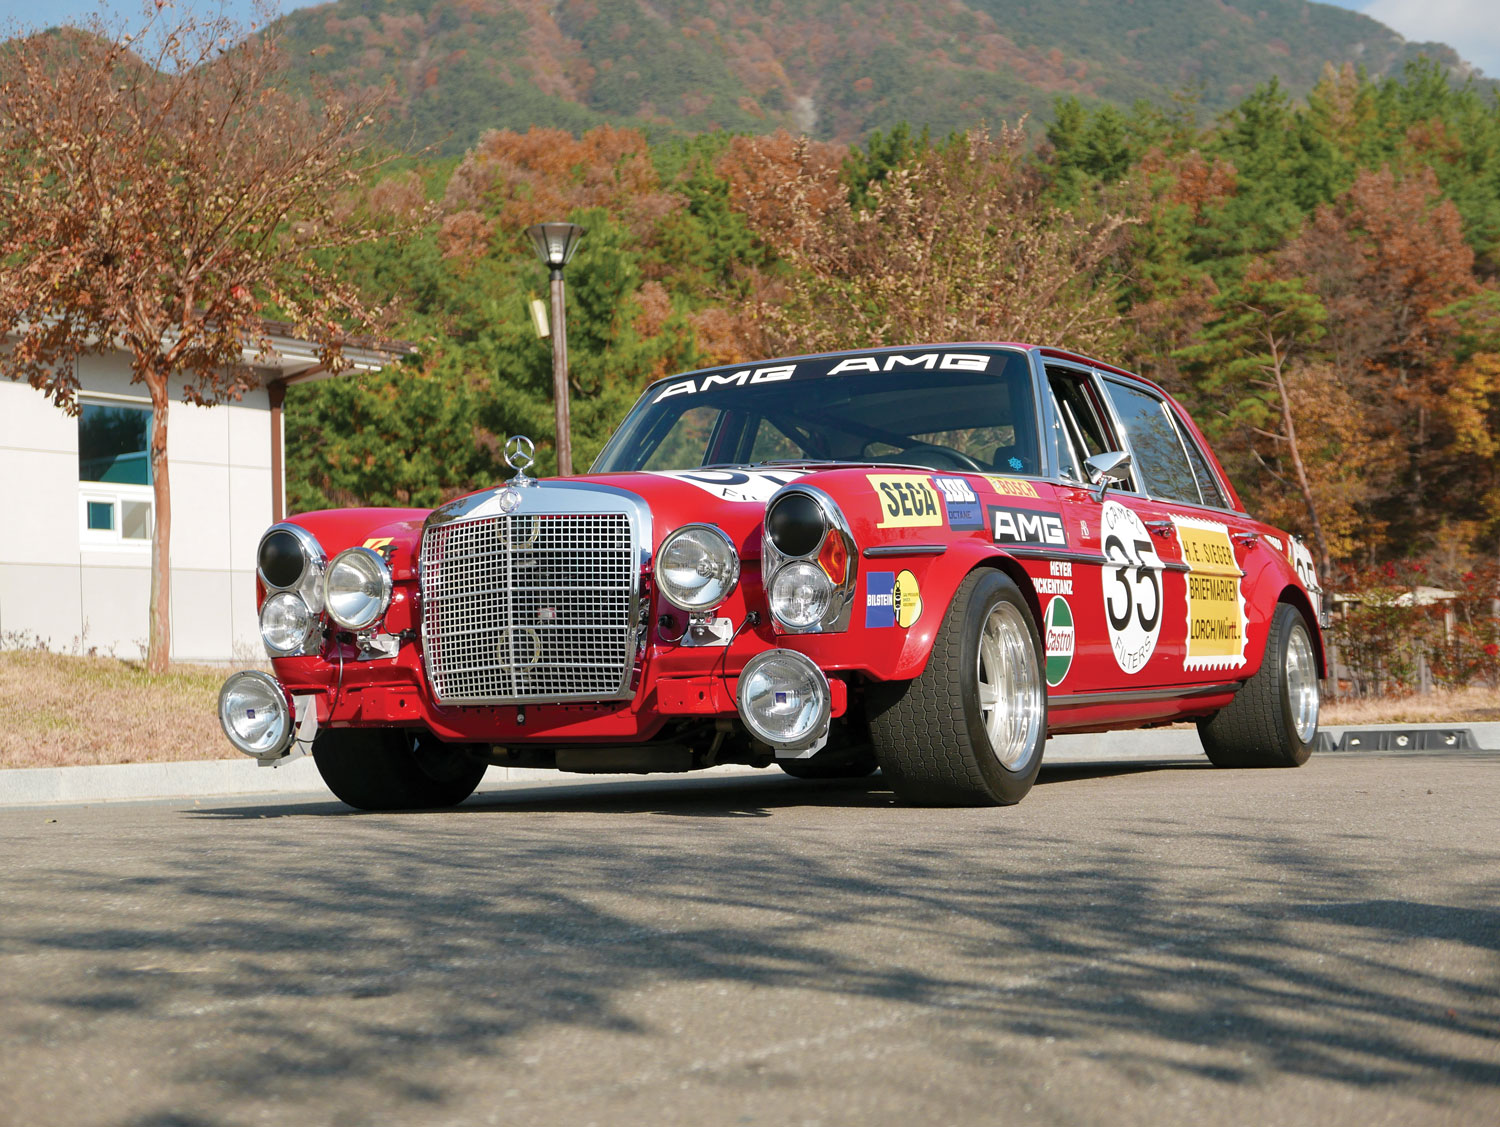 1969 Mercedes-Benz 300 SEL 6.3 'Red Pig' Replica